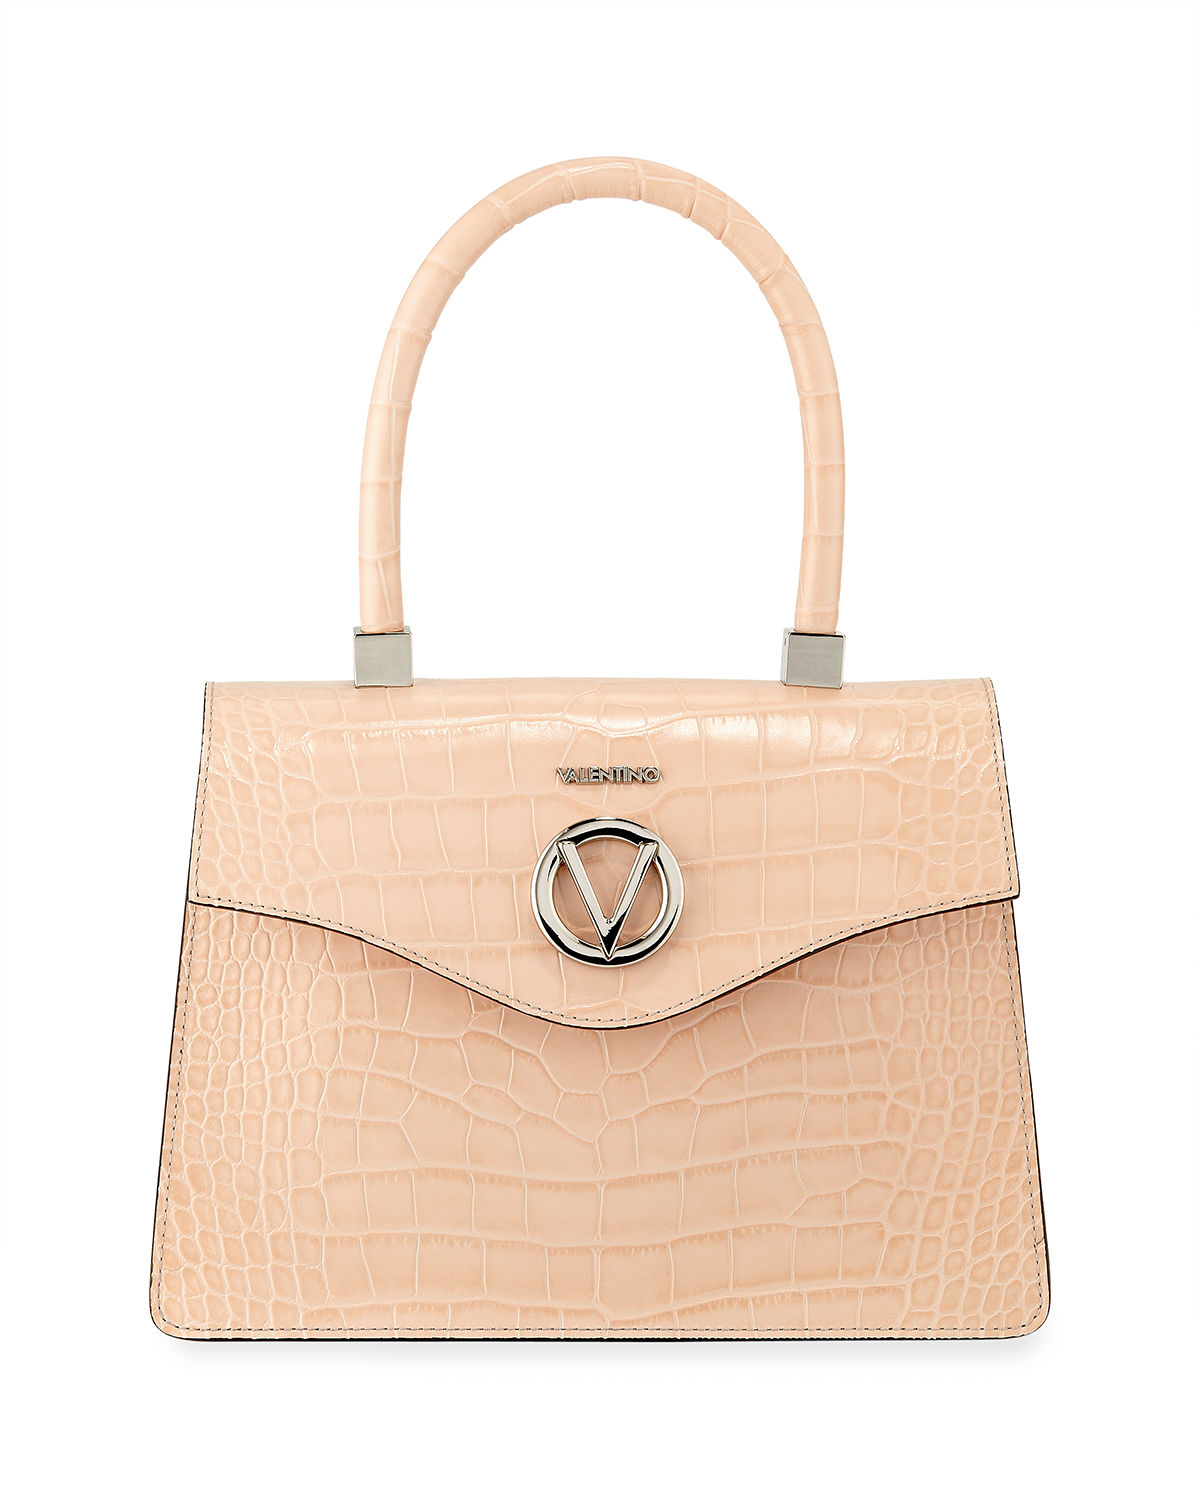 Melanie Croc-Embossed Leather Top-Handle Bag